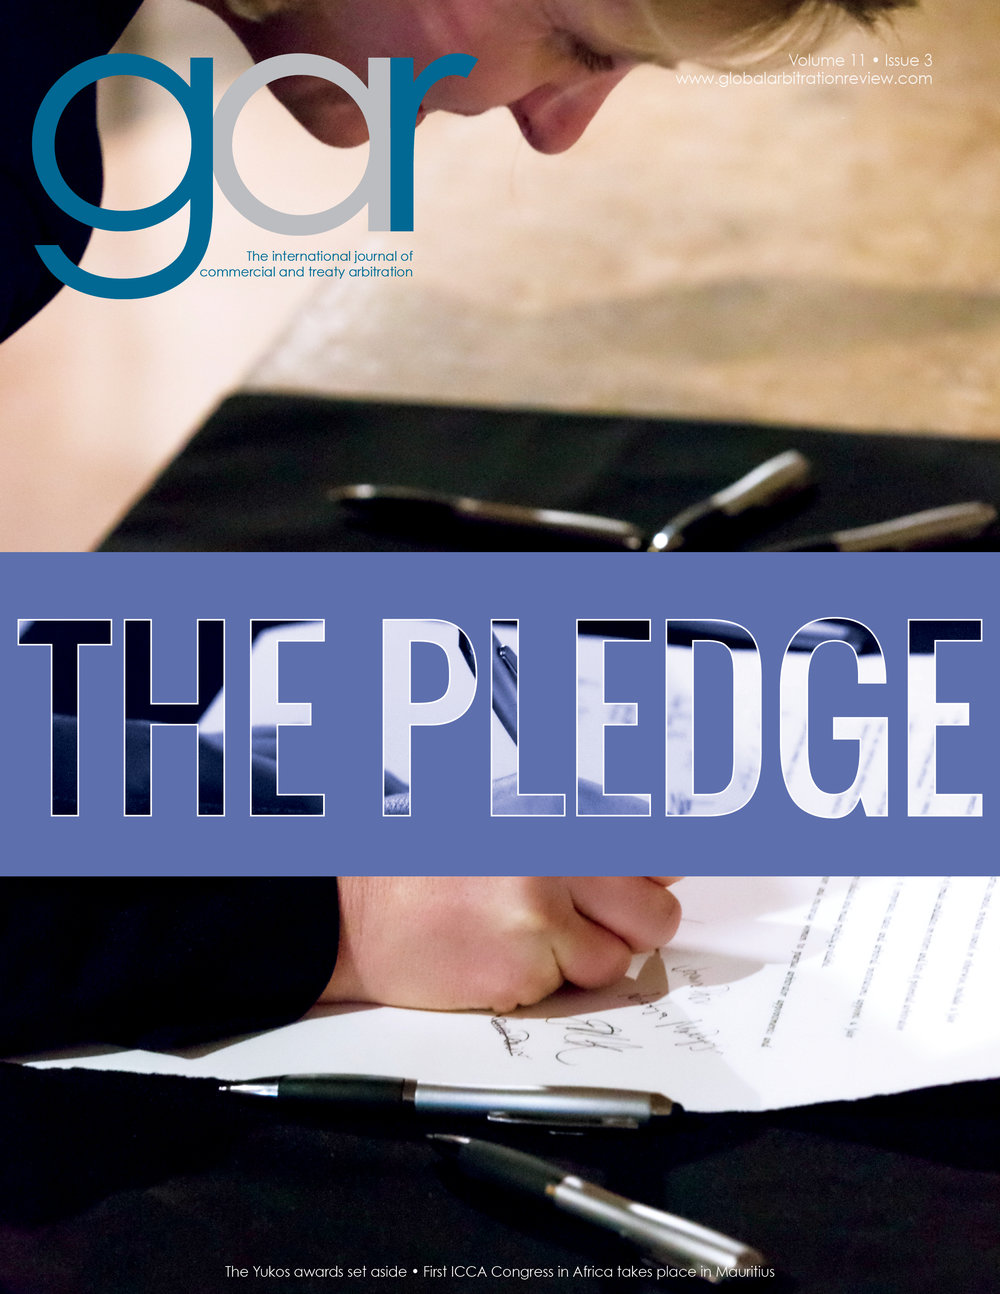 Member of the Steering Committee of the Equal Representation in Arbitration Pledge, Lucy Greenwood signing the Pledge at its launch in 2015